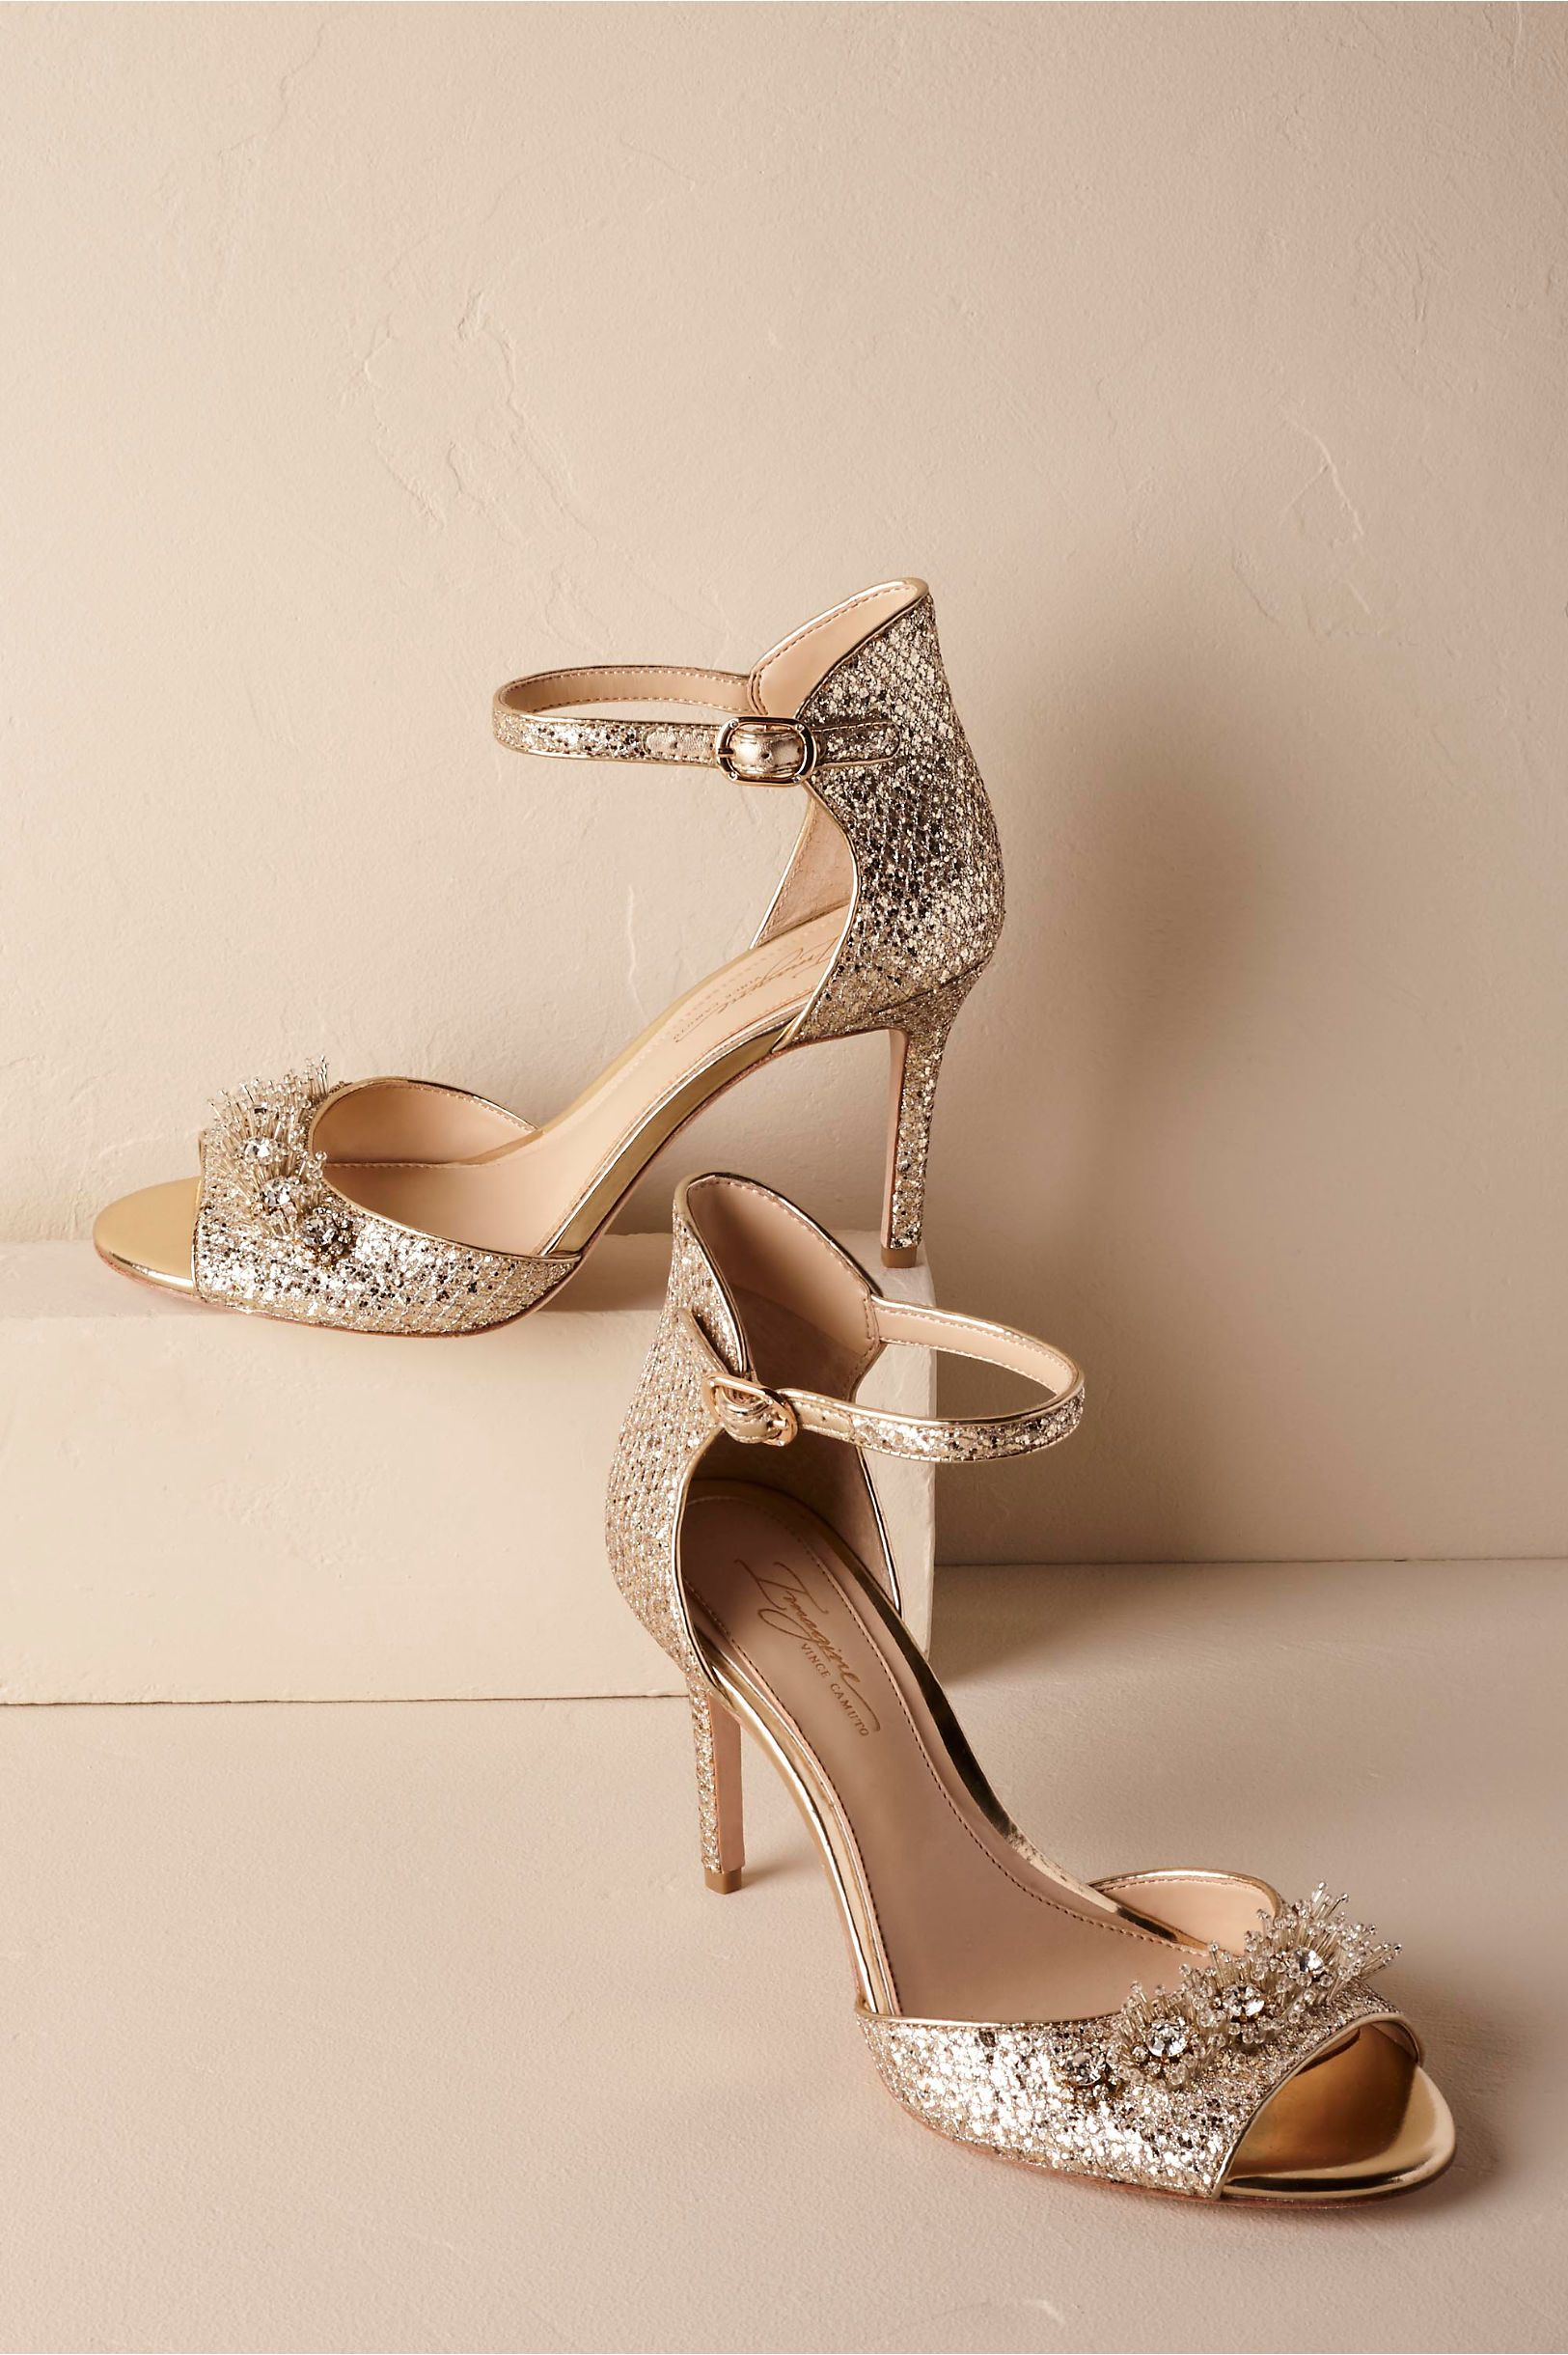 c531241366c BHLDN s Brinley Heels in Gold. Find this Pin and more on Bridal Shoes ...